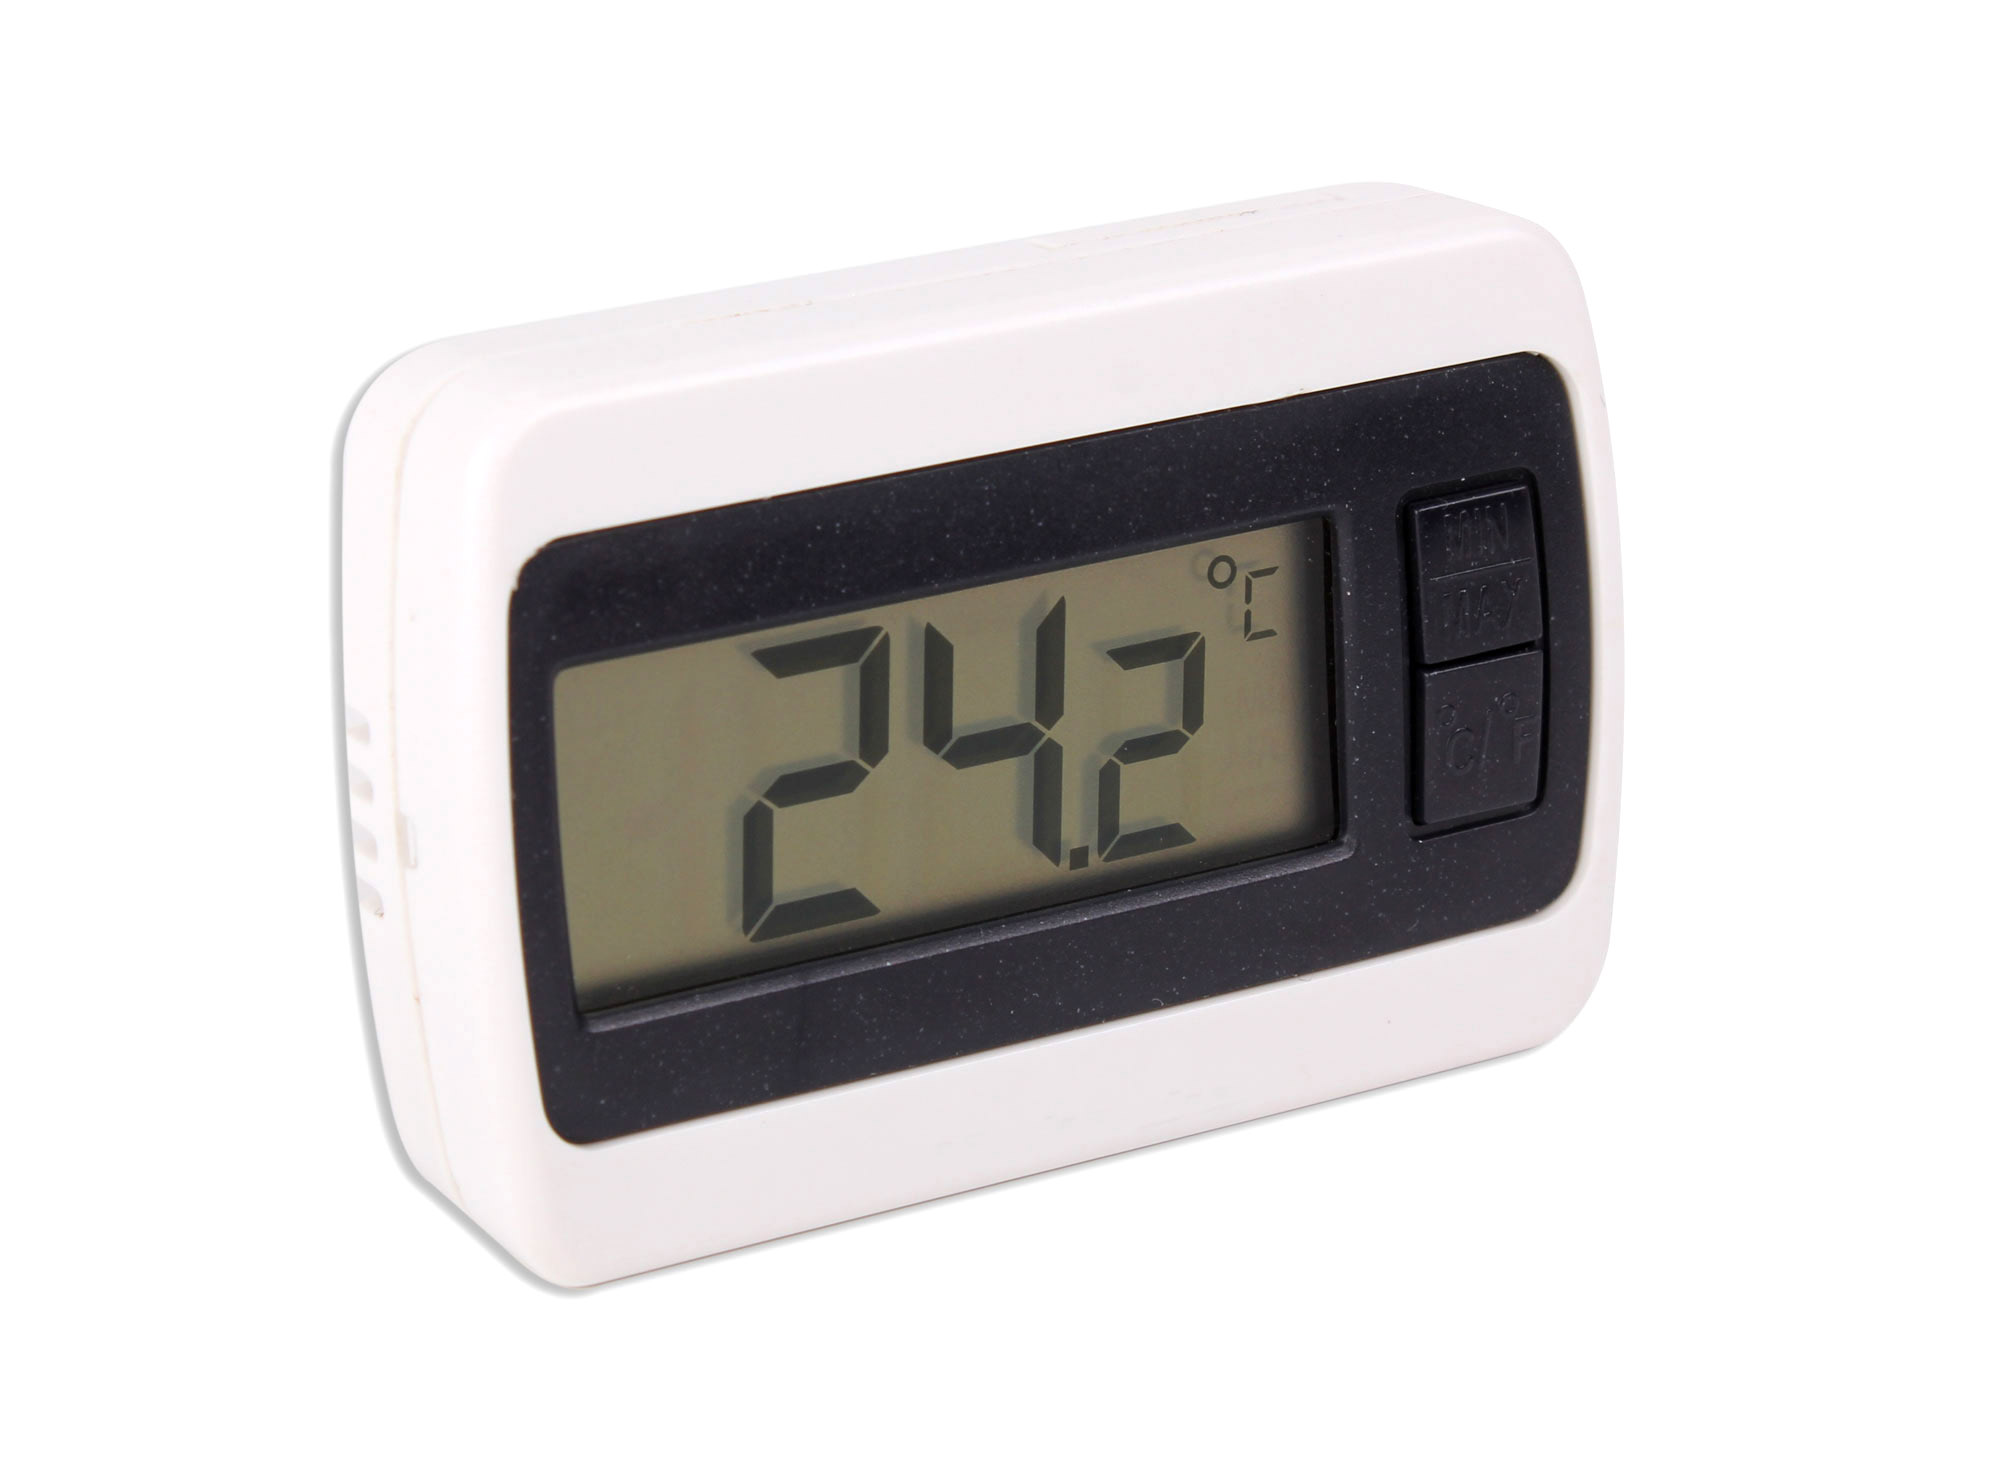 Free Room Thermometer For Baby